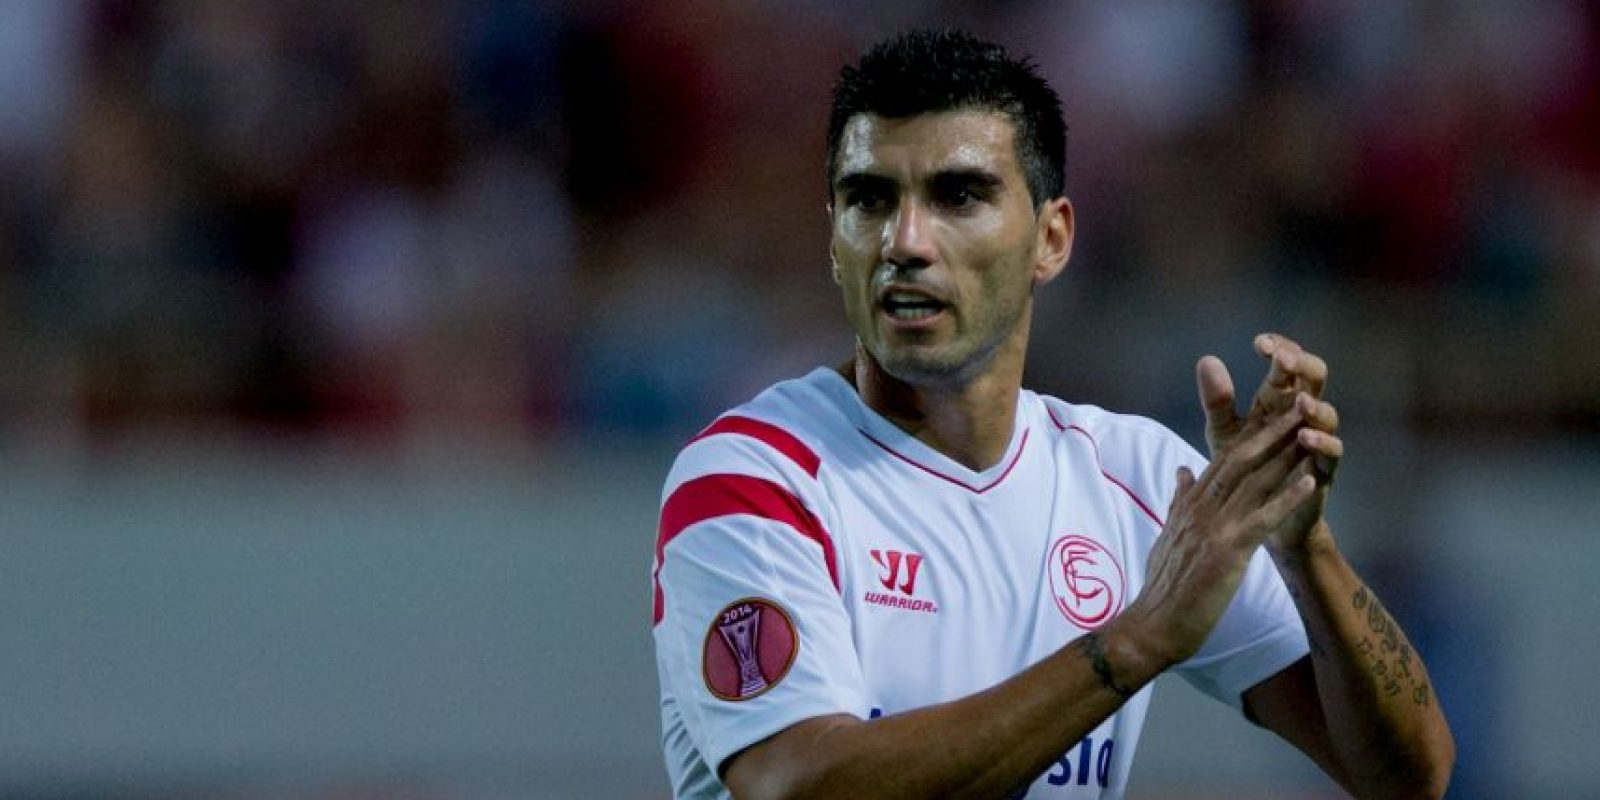 6. José Antonio Reyes Foto: Getty Images